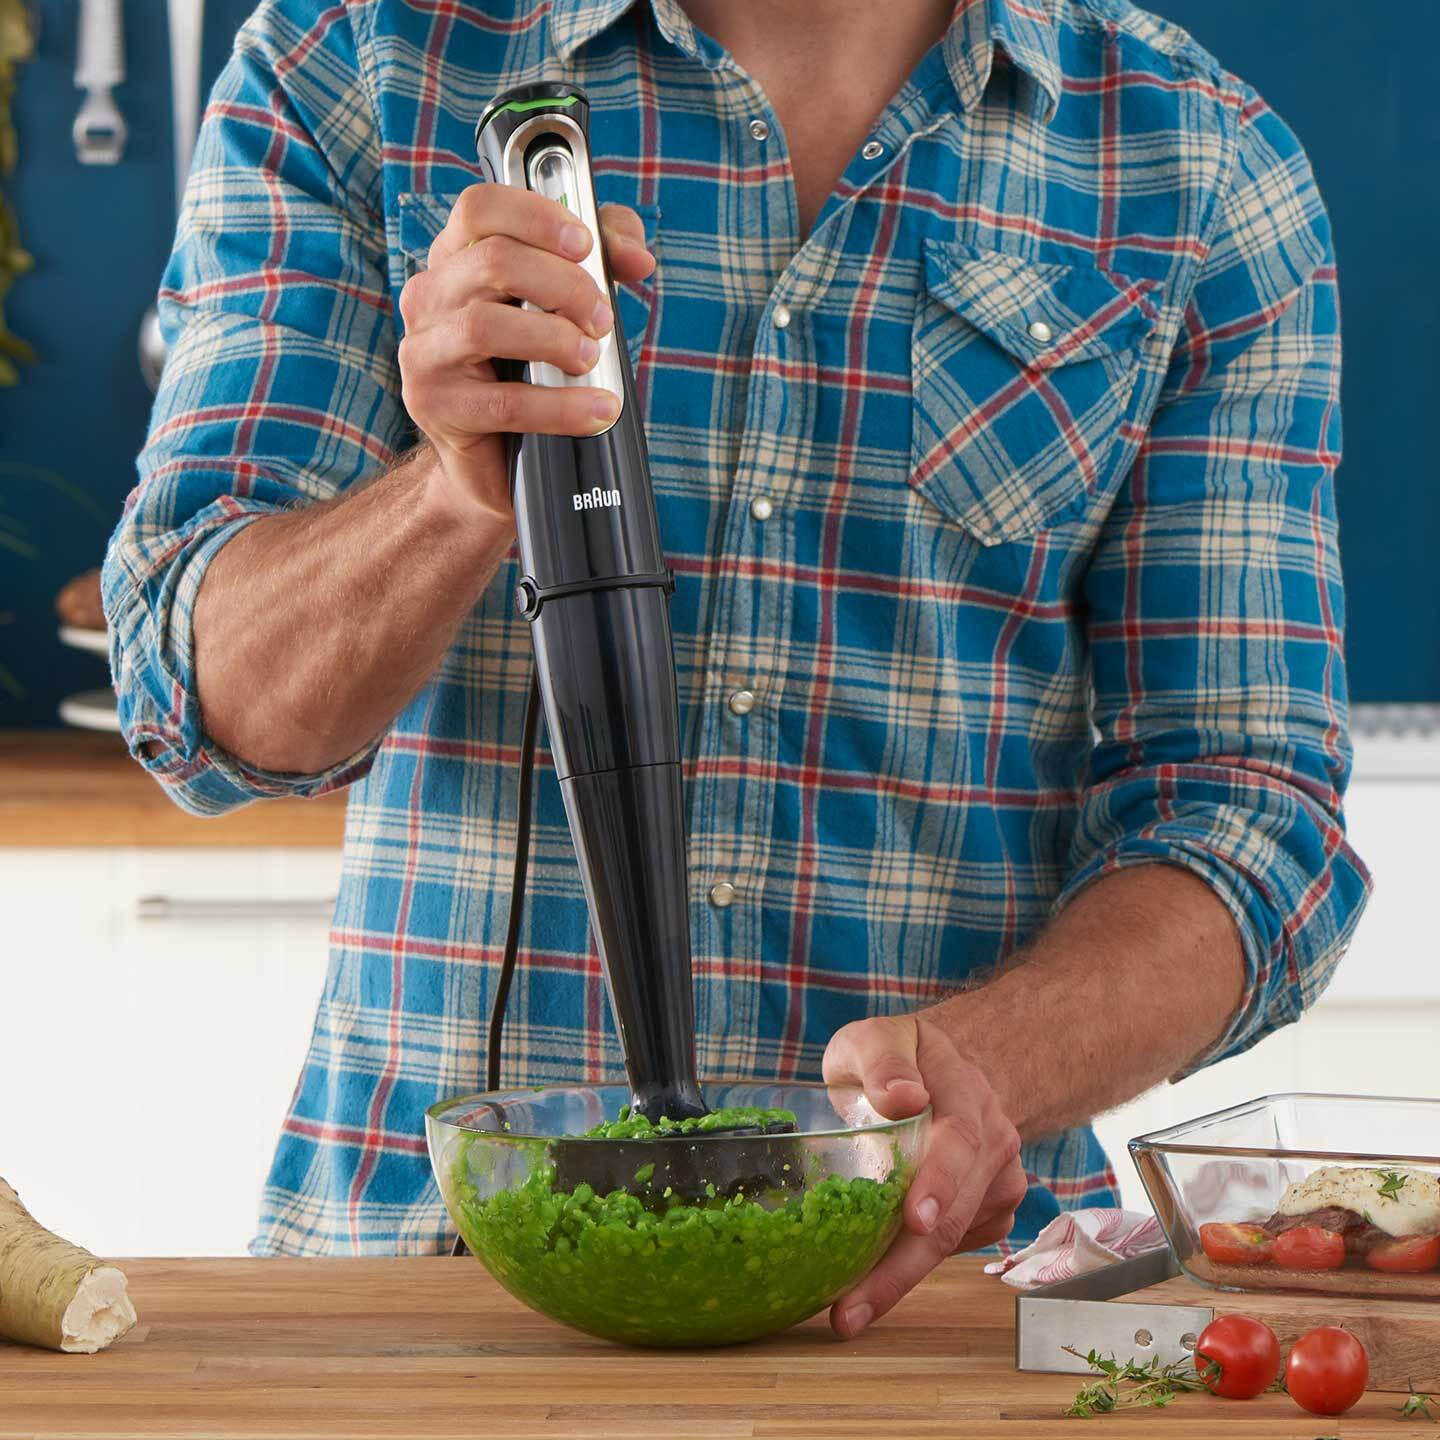 Braun MultiQuick 9X Hand blender with Masher attachment